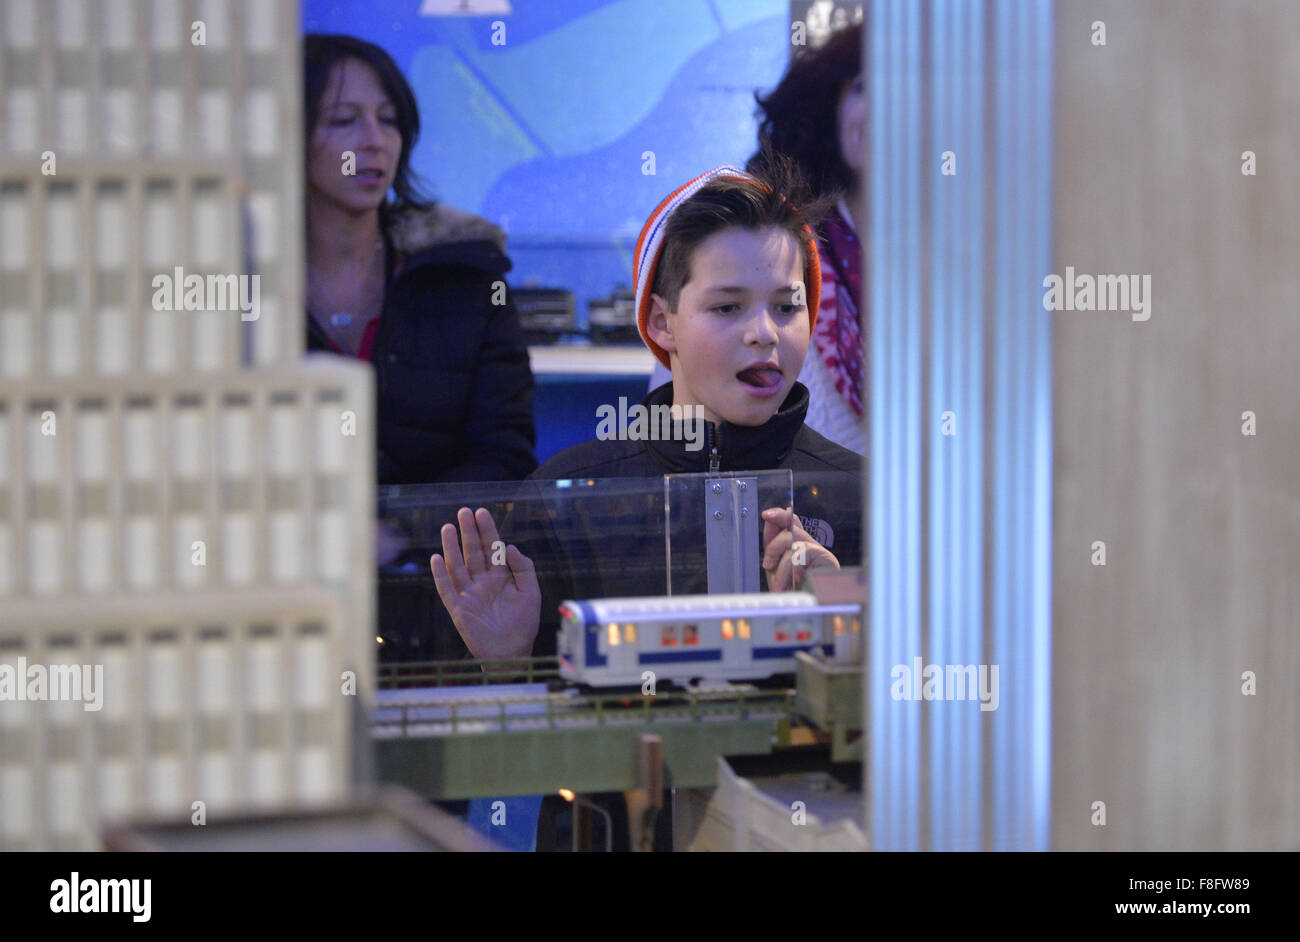 New York, USA. 9th Dec, 2015. A boy watches a model railroad presented during the Holiday Train Show at Grand Central - Stock Image